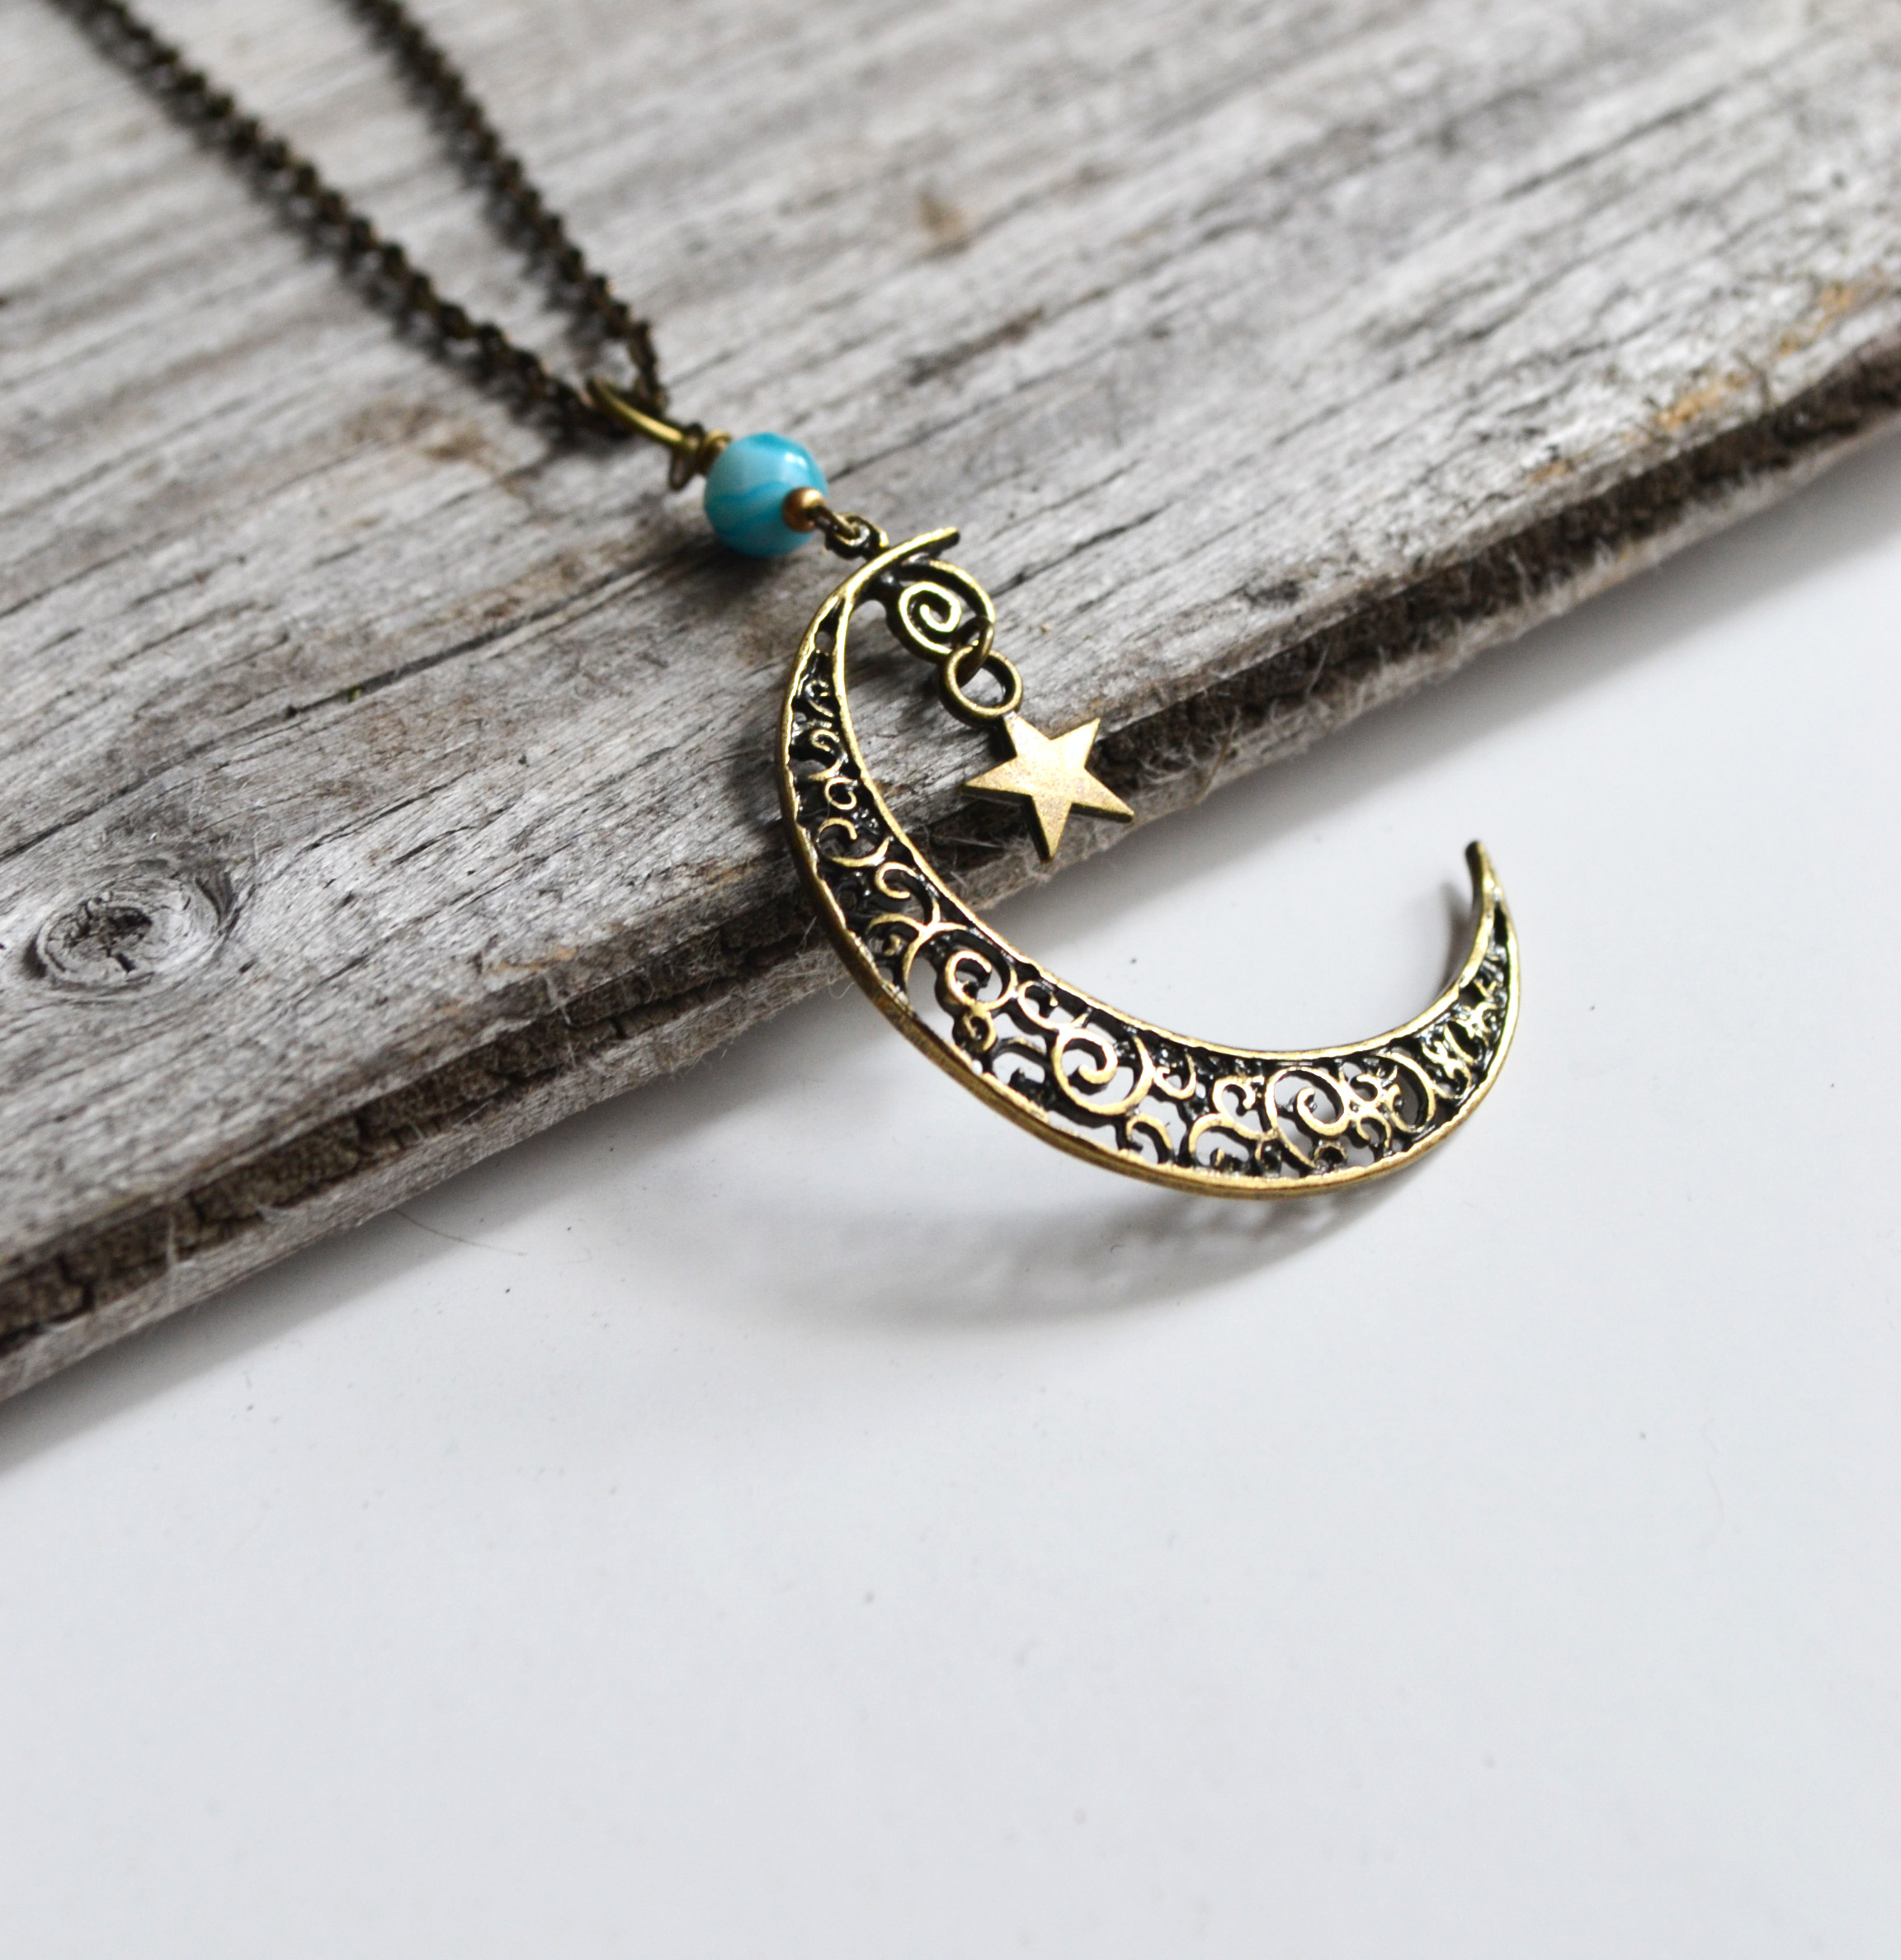 pendant products moon enlarged realreal jewelry necklaces necklace the half